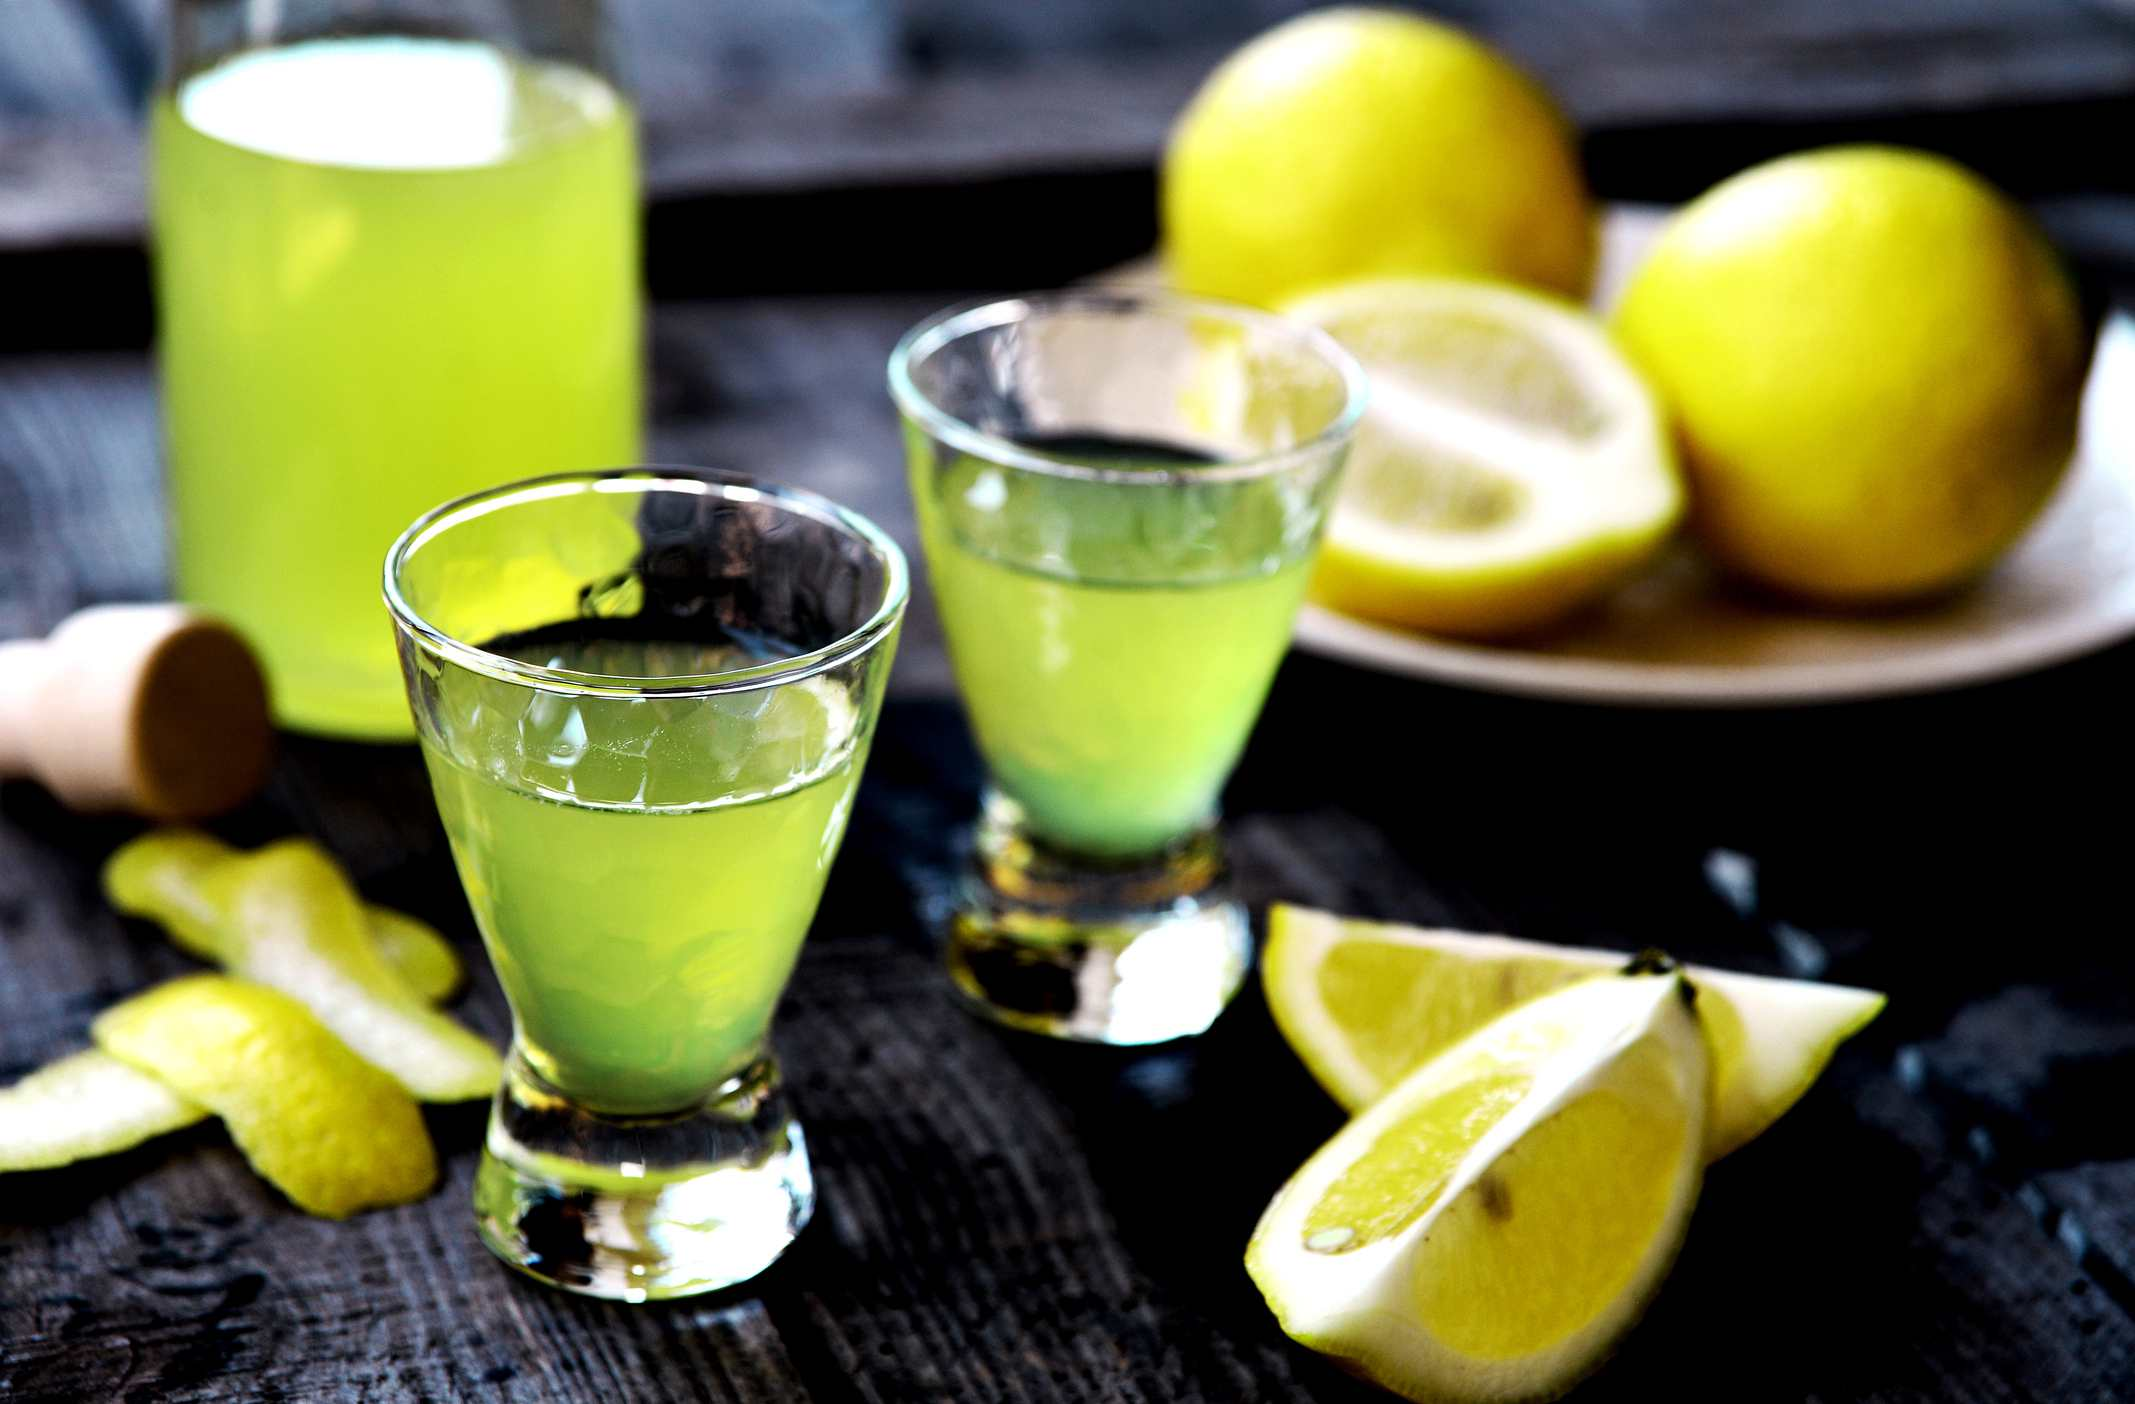 Shots of Limoncello with lemon wedges.